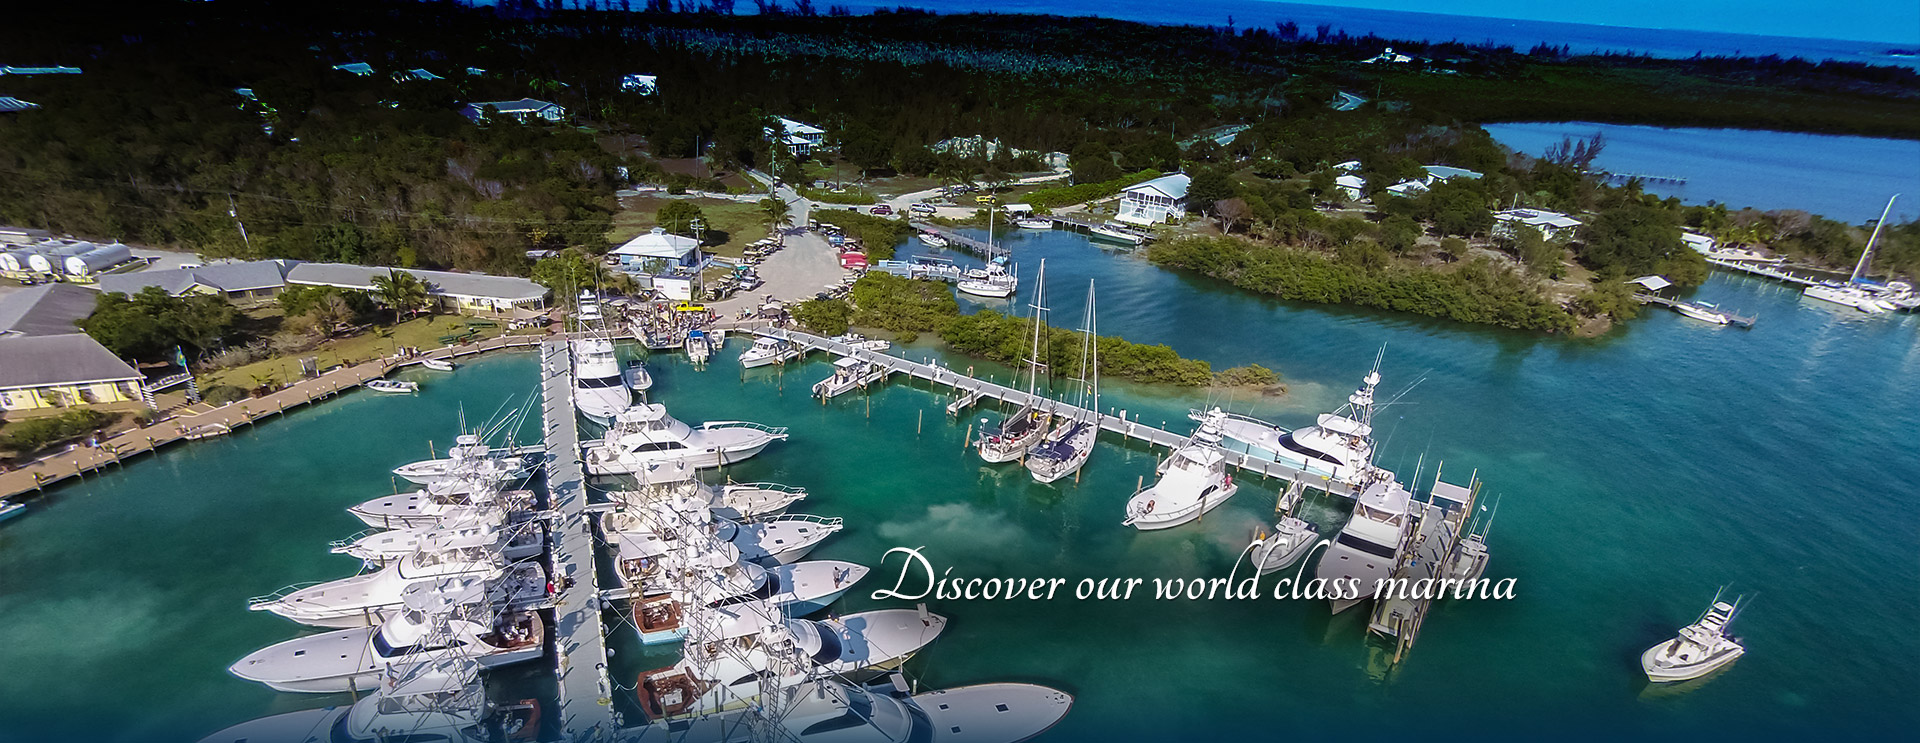 Green Turtle Club Marina in Abaco, 0